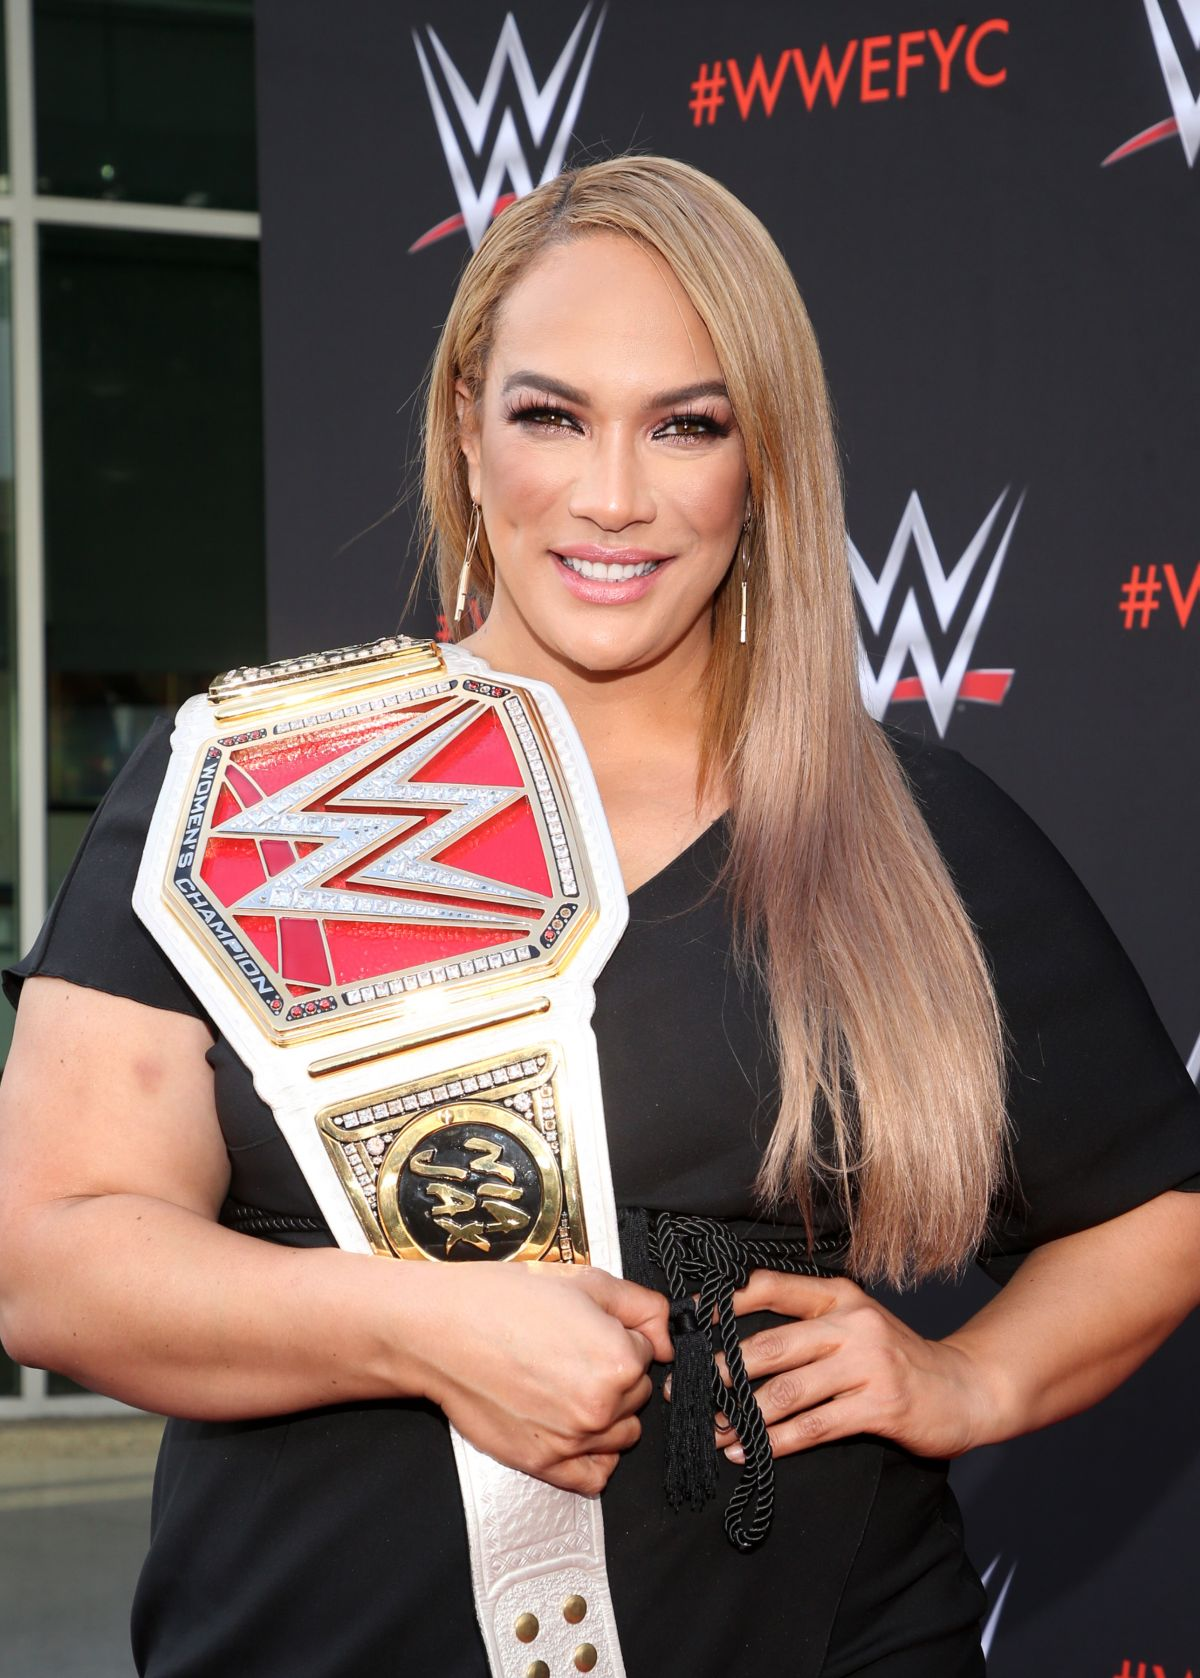 Nia Jax Calls Out WWE For Not Promoting Women Of Color In